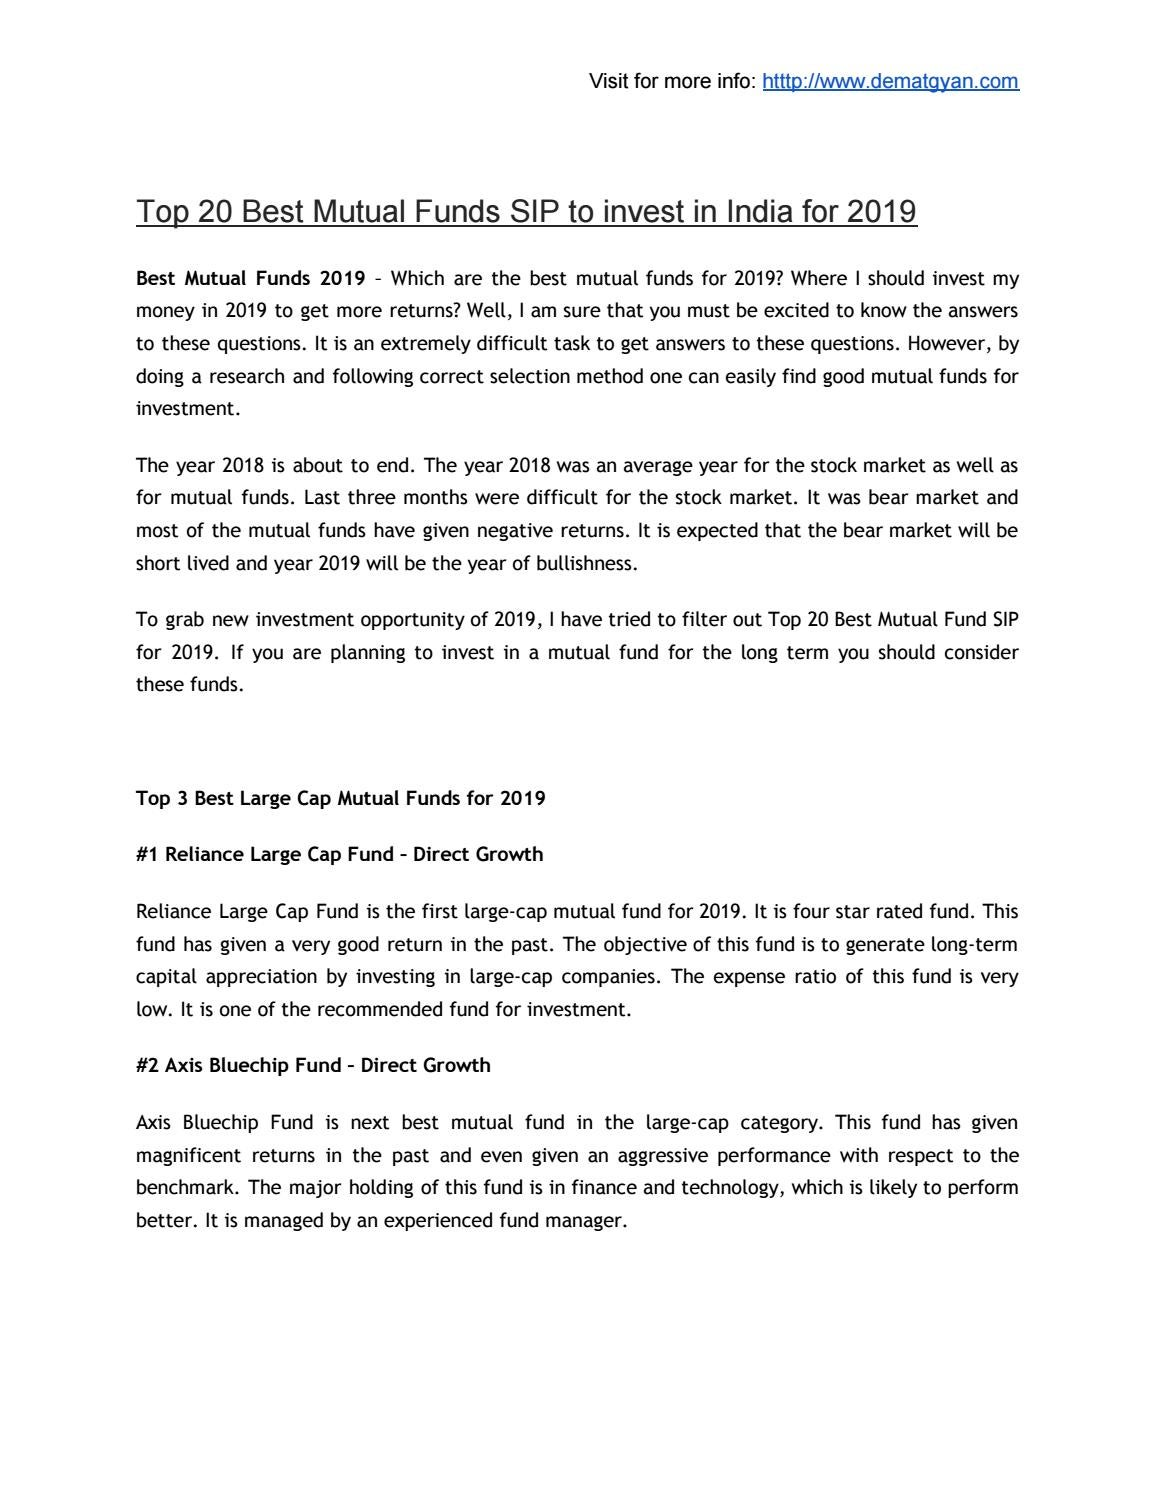 Top 20 Best Mutual Funds SIP to invest in India for 2019 by